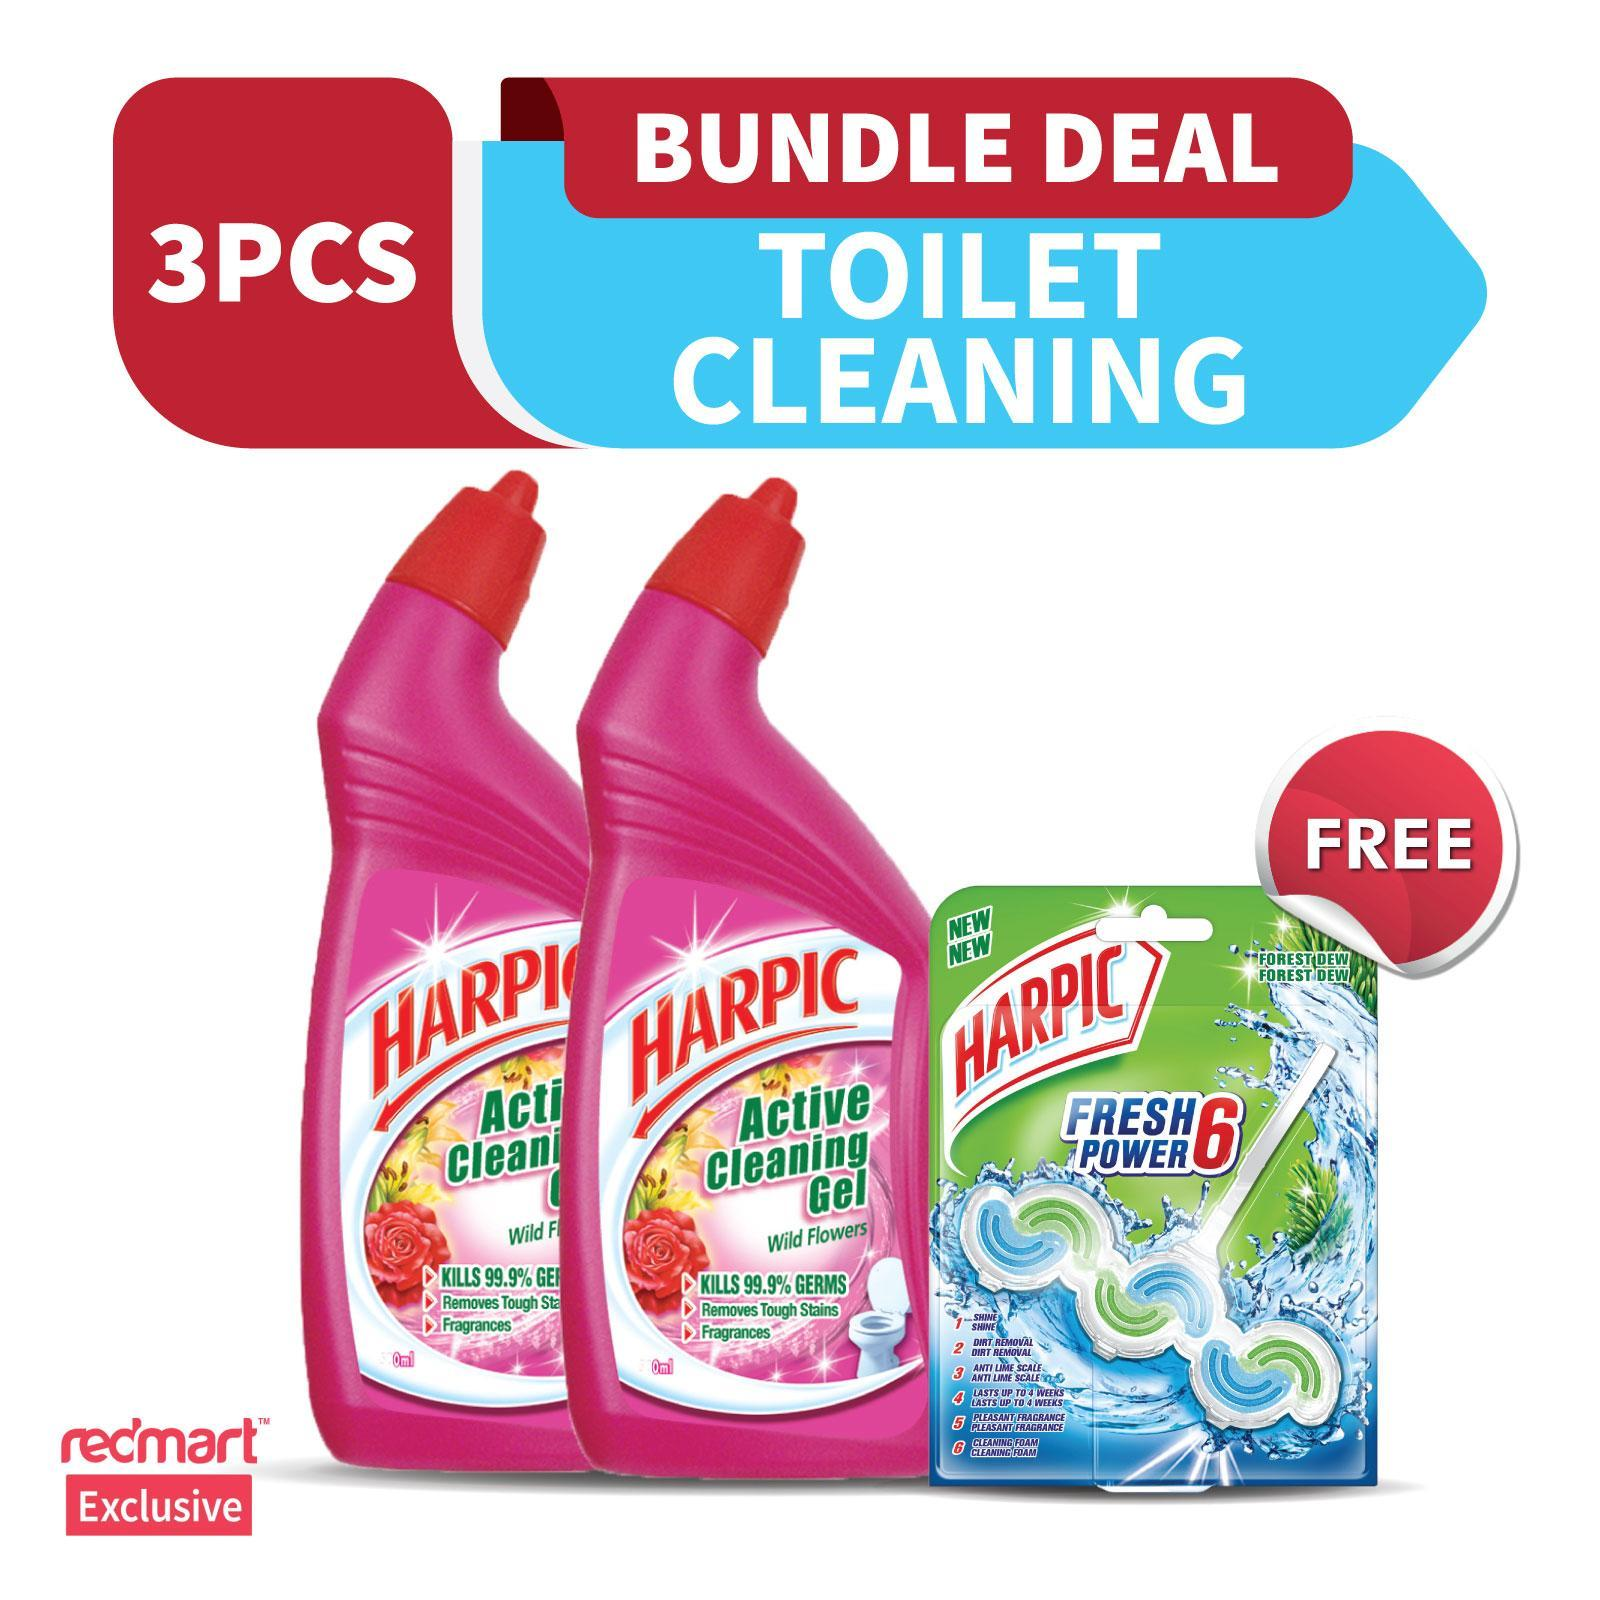 Harpic Wild Flowers Active Cleaning Gel Twin Pack Free Harpic White And Shine Fresh Power 6 Block Forest Dew